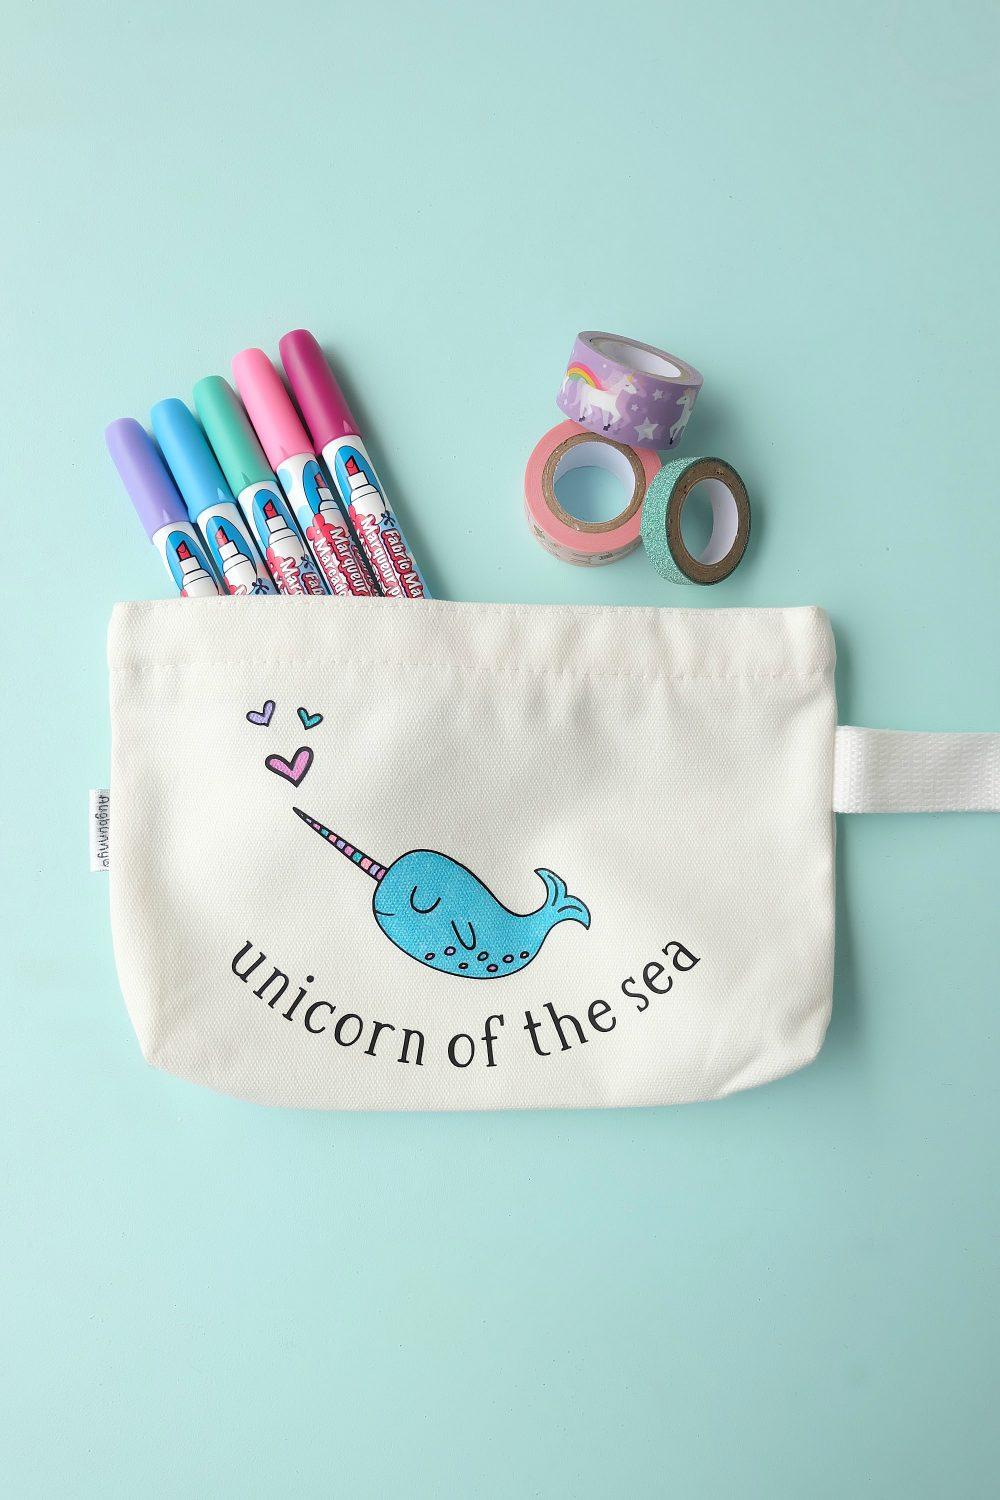 Create a sweet little DIY Narwhal Zippered Pouch that the recipient can color in! This thoughtful handmade gift takes only minutes to make and is a thoughtful handmade gift idea for kids (or adults!) It's a coloring sheet and a pencil pouch in one! #Cricut #Narwhal #DIY #Coloring